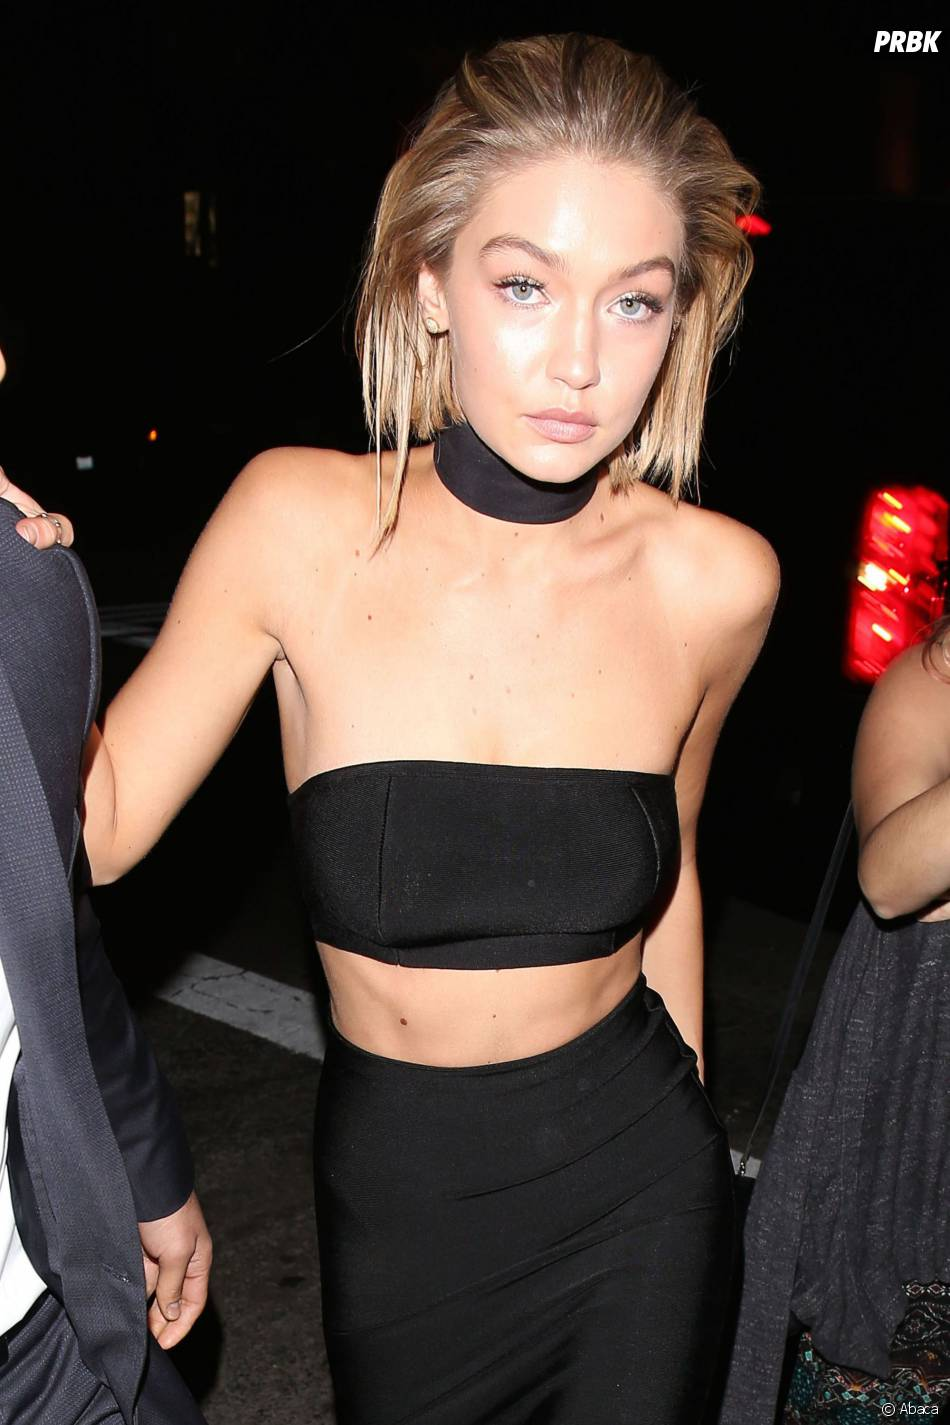 Gigi Hadid hot sur le tapis rouge des American Video Awards 2015 à Los Angeles, le 22 novembre 2015